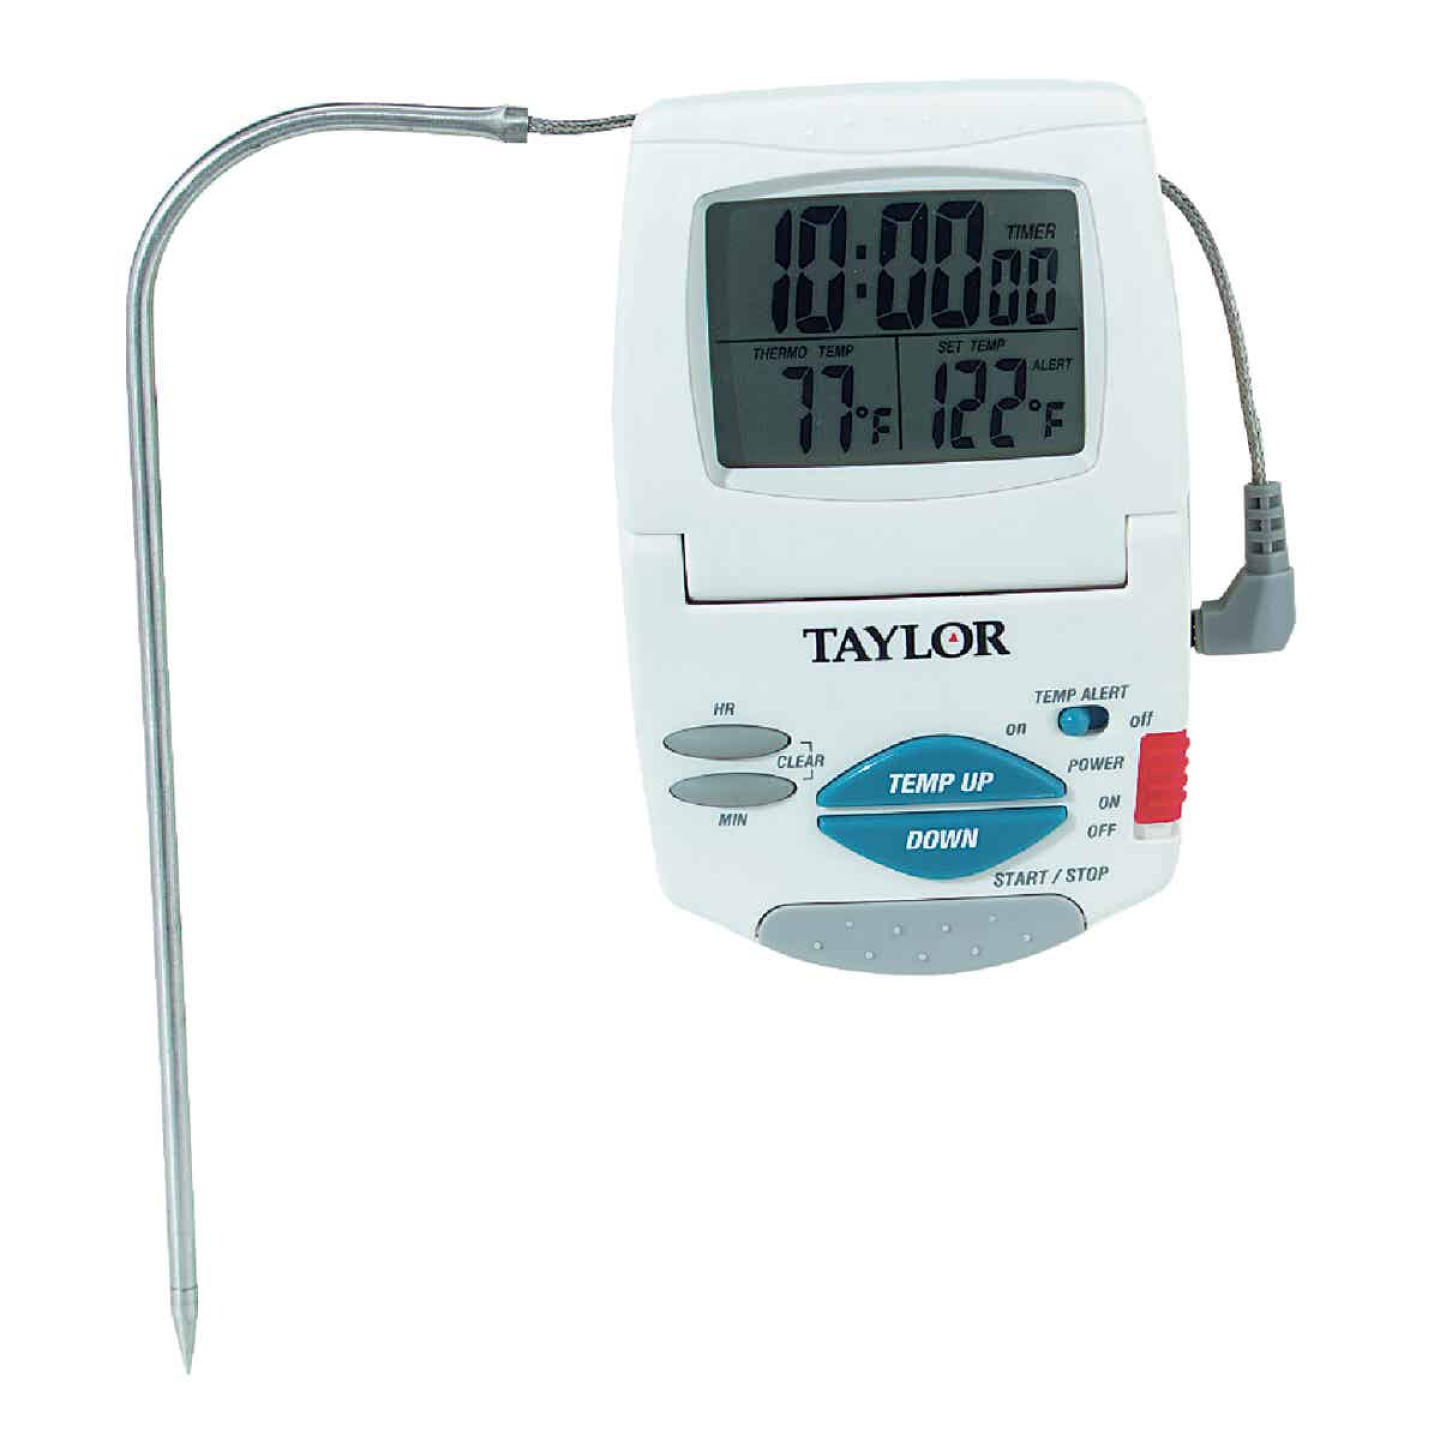 Taylor Digital Oven Kitchen Thermometer Image 1